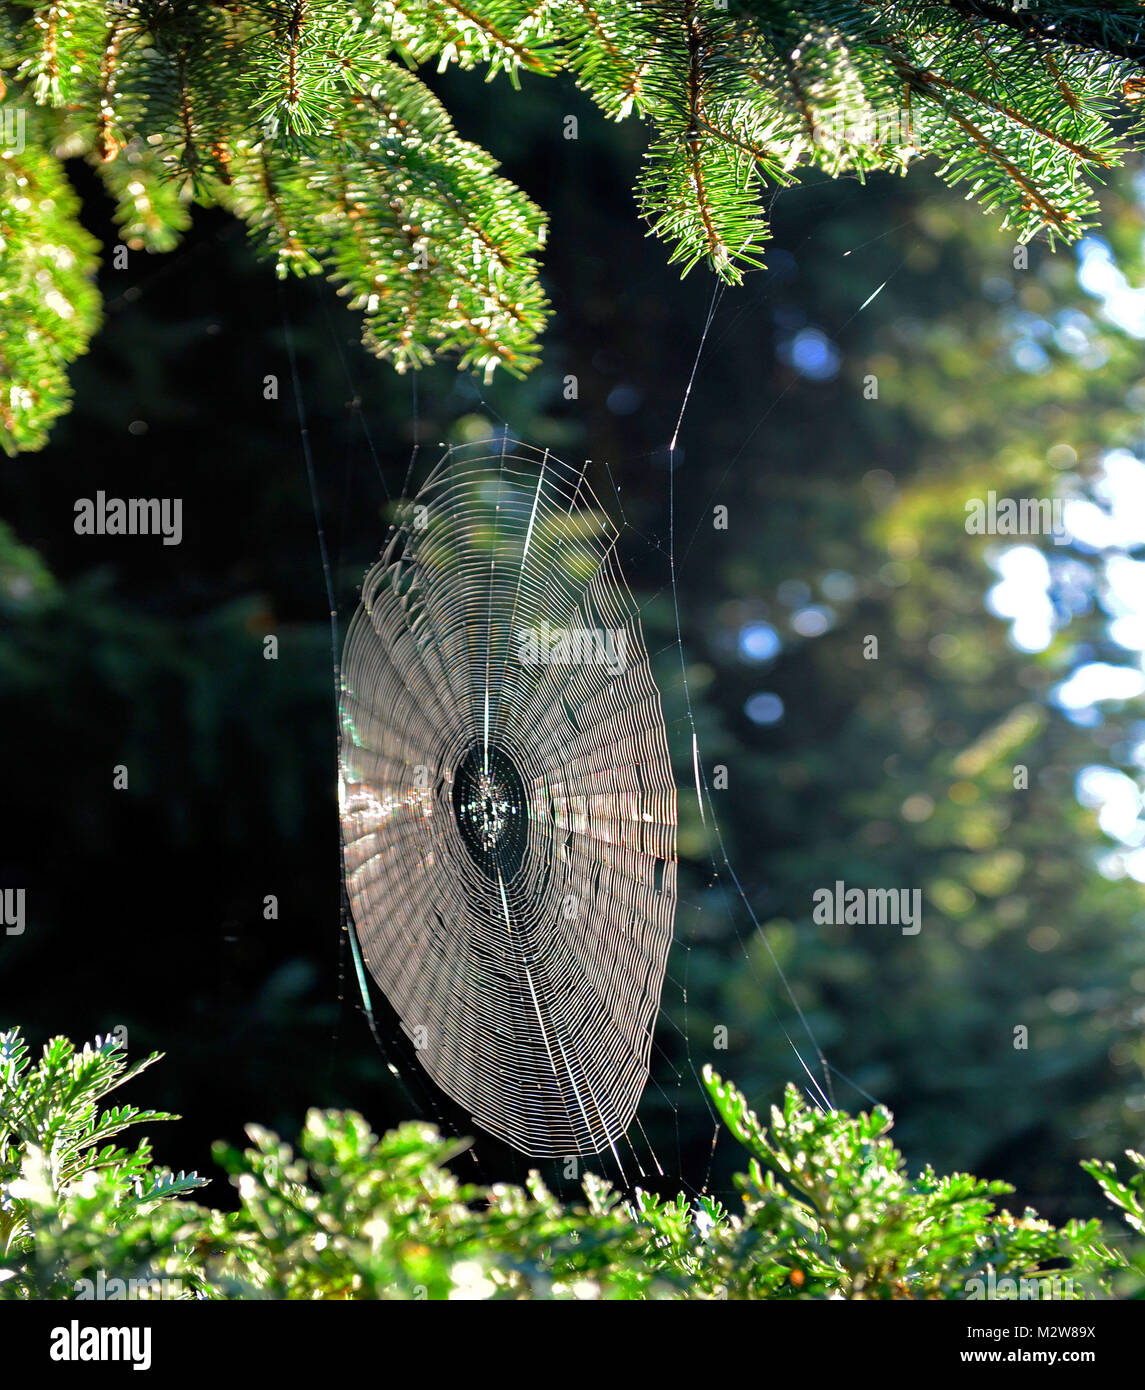 orb web of the cross spider for catching in the Indian summer - Stock Image